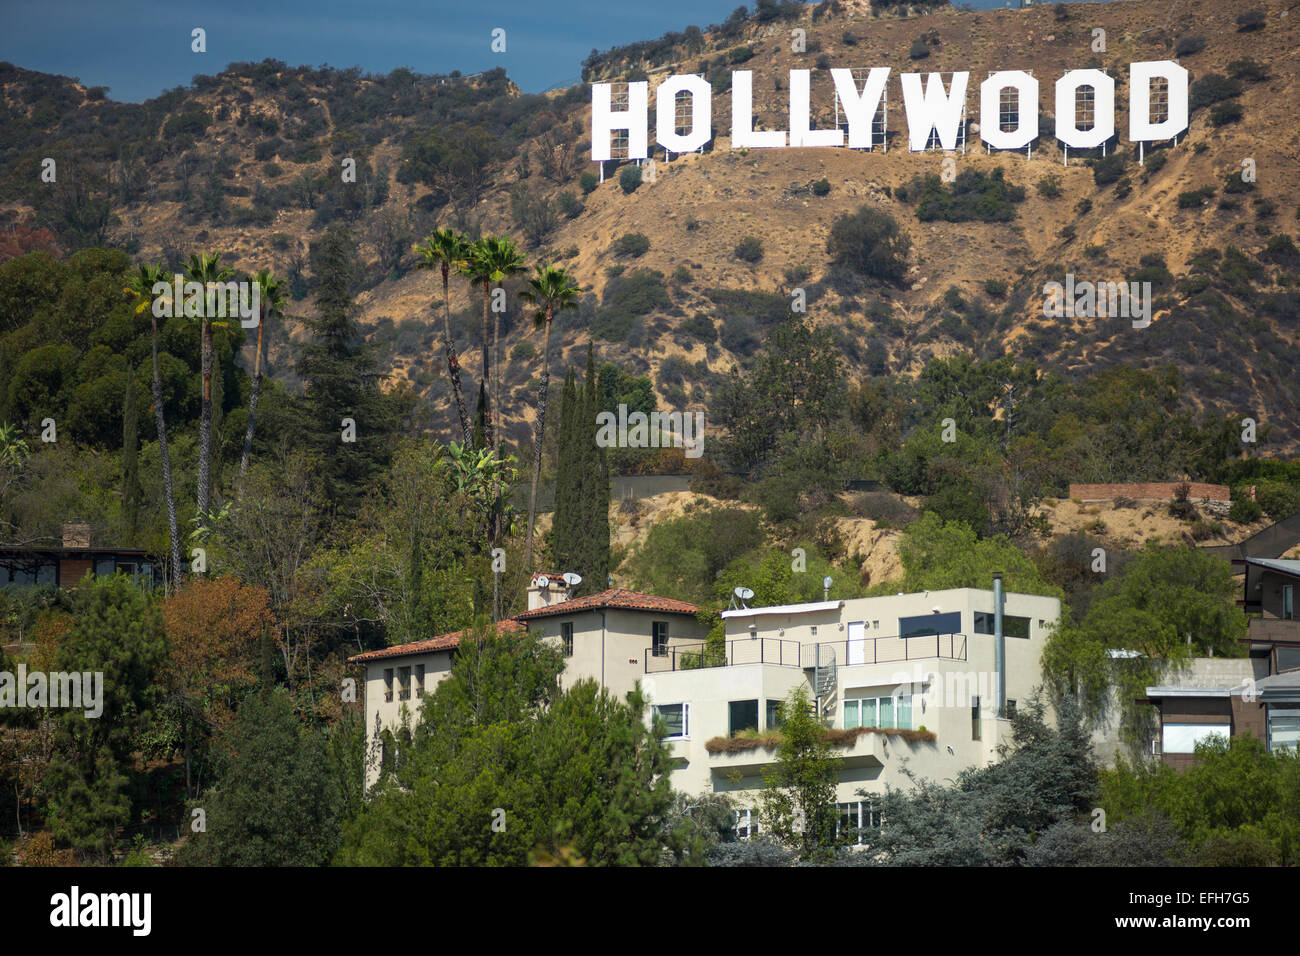 Attractive MANSIONS HOLLYWOOD SIGN MOUNT LEE HOLLYWOOD HILLS LOS ANGELES CALIFORNIA USA